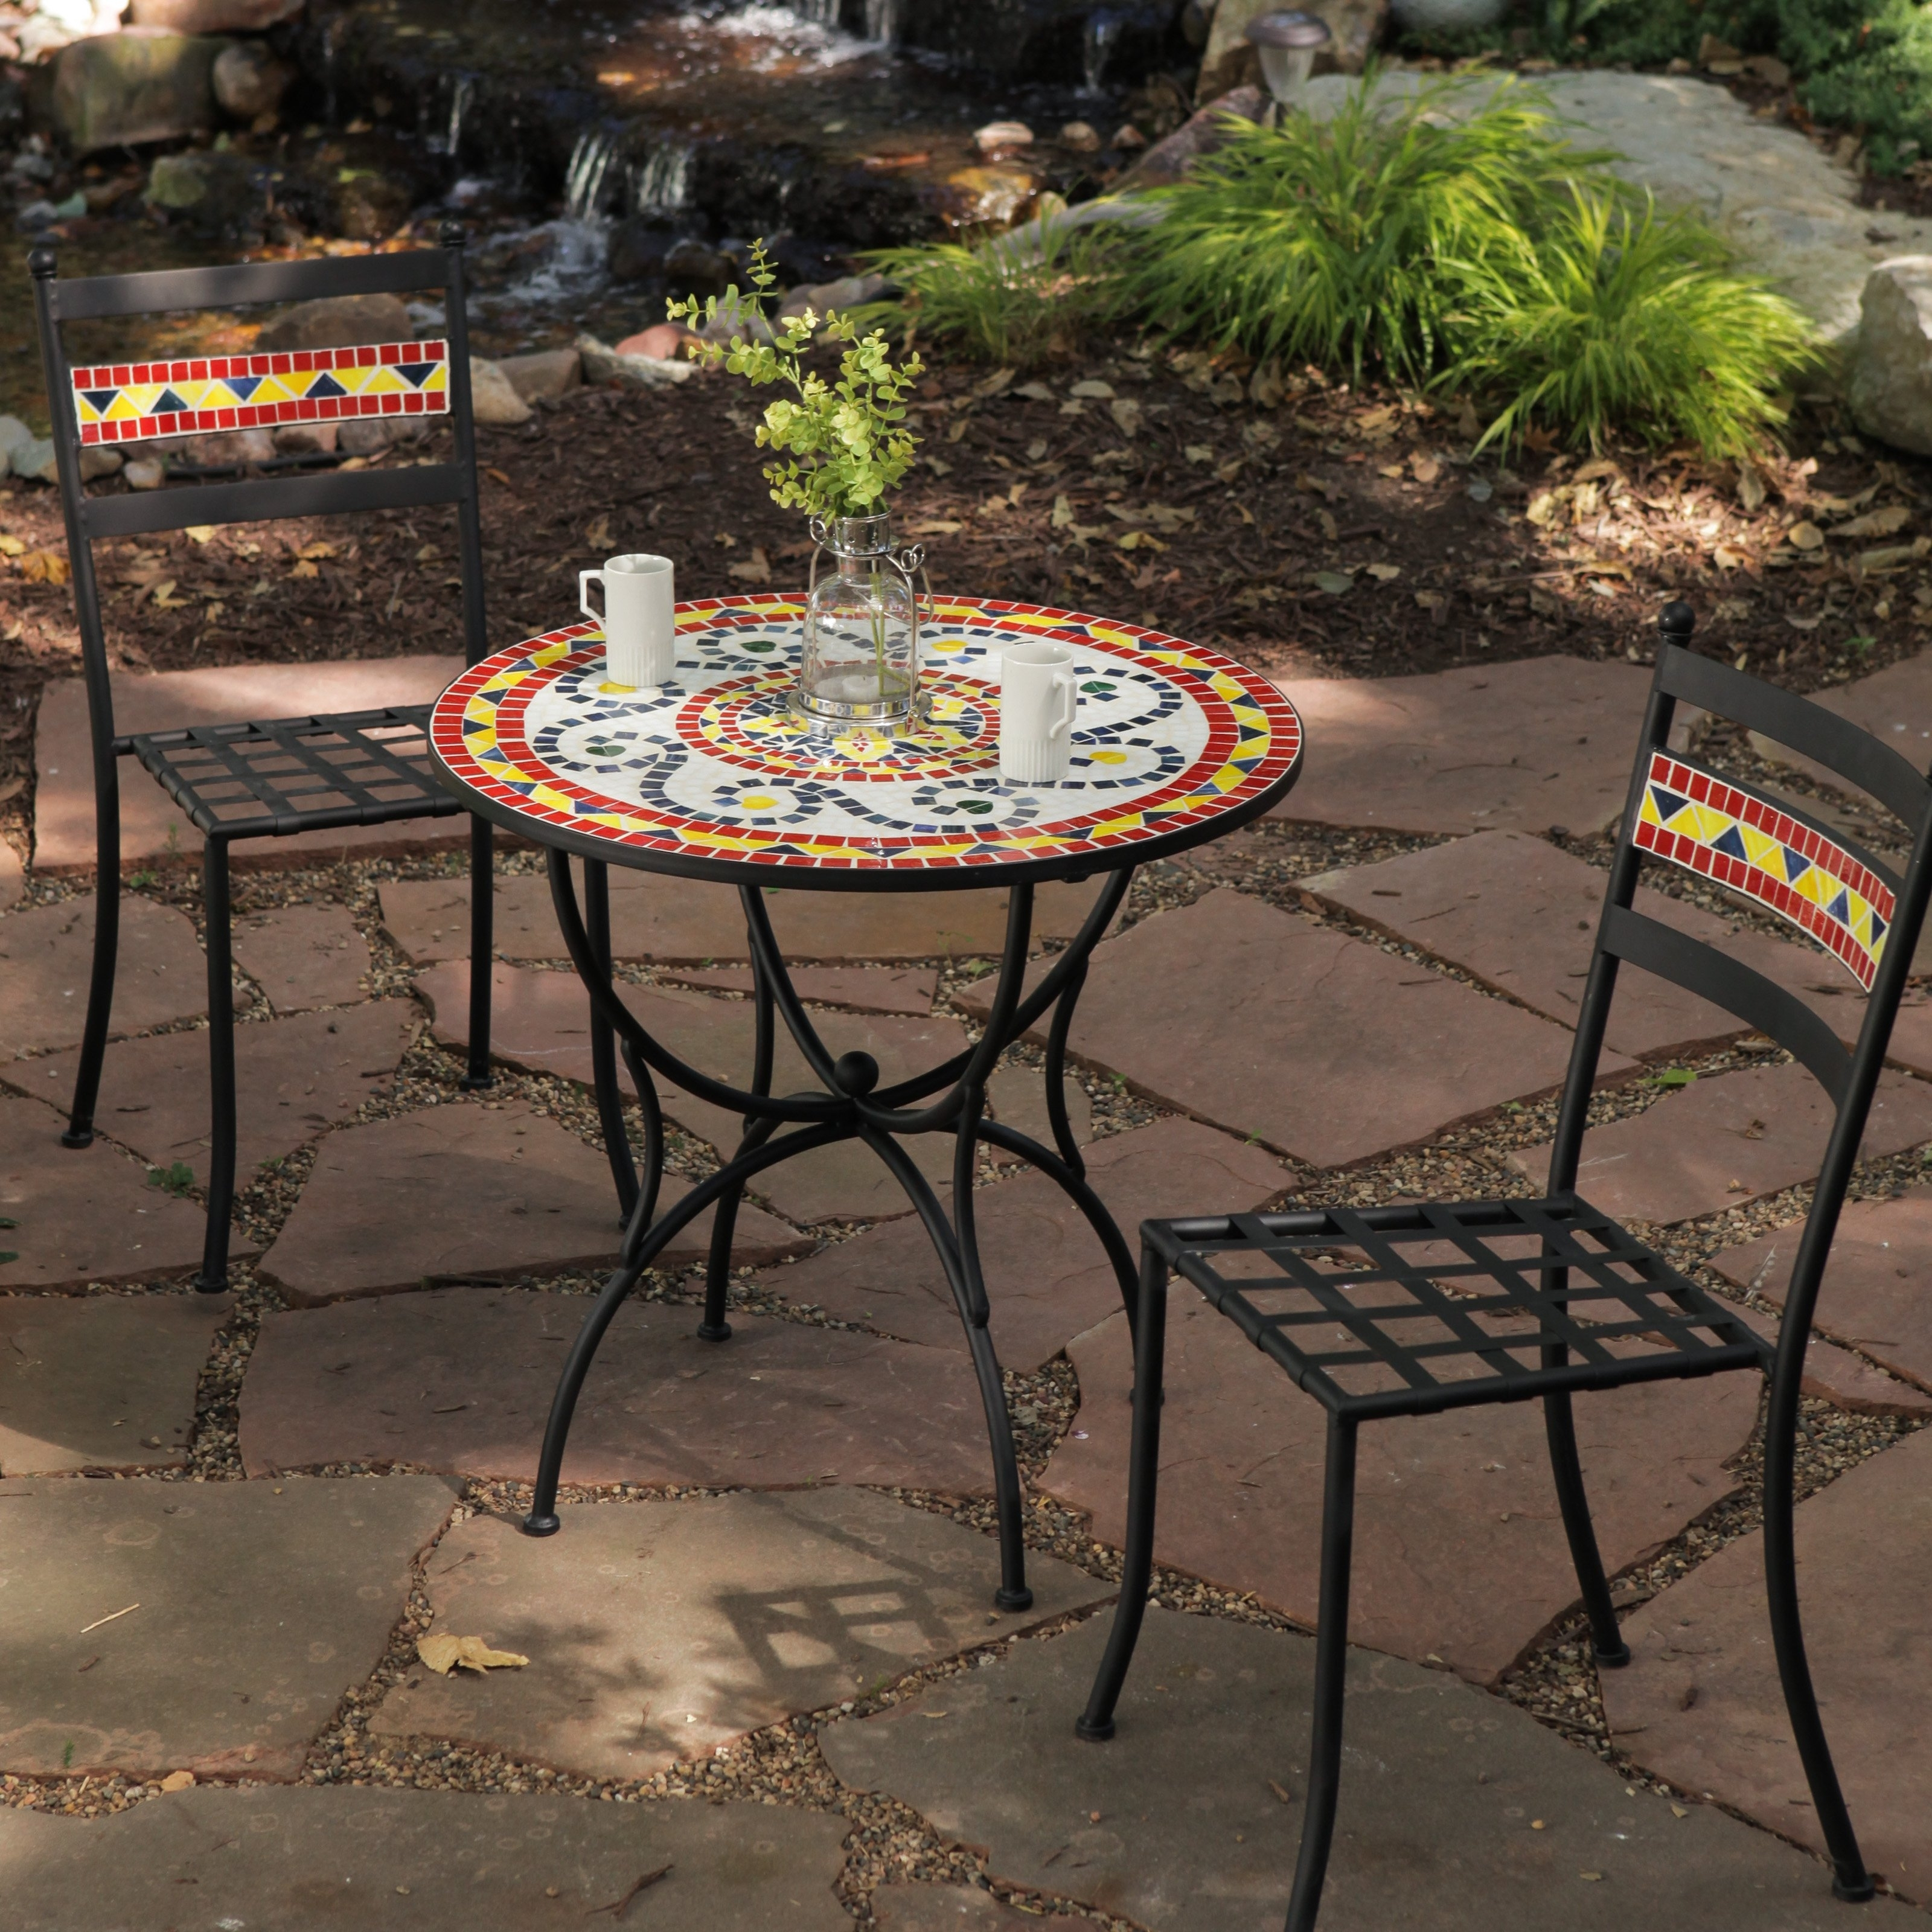 Preferred Mosaic Dining Tables For Sale Intended For Mosaic Table And Chairs Set Mosaic Outdoor Table And Diy Patio Furniture (View 20 of 25)